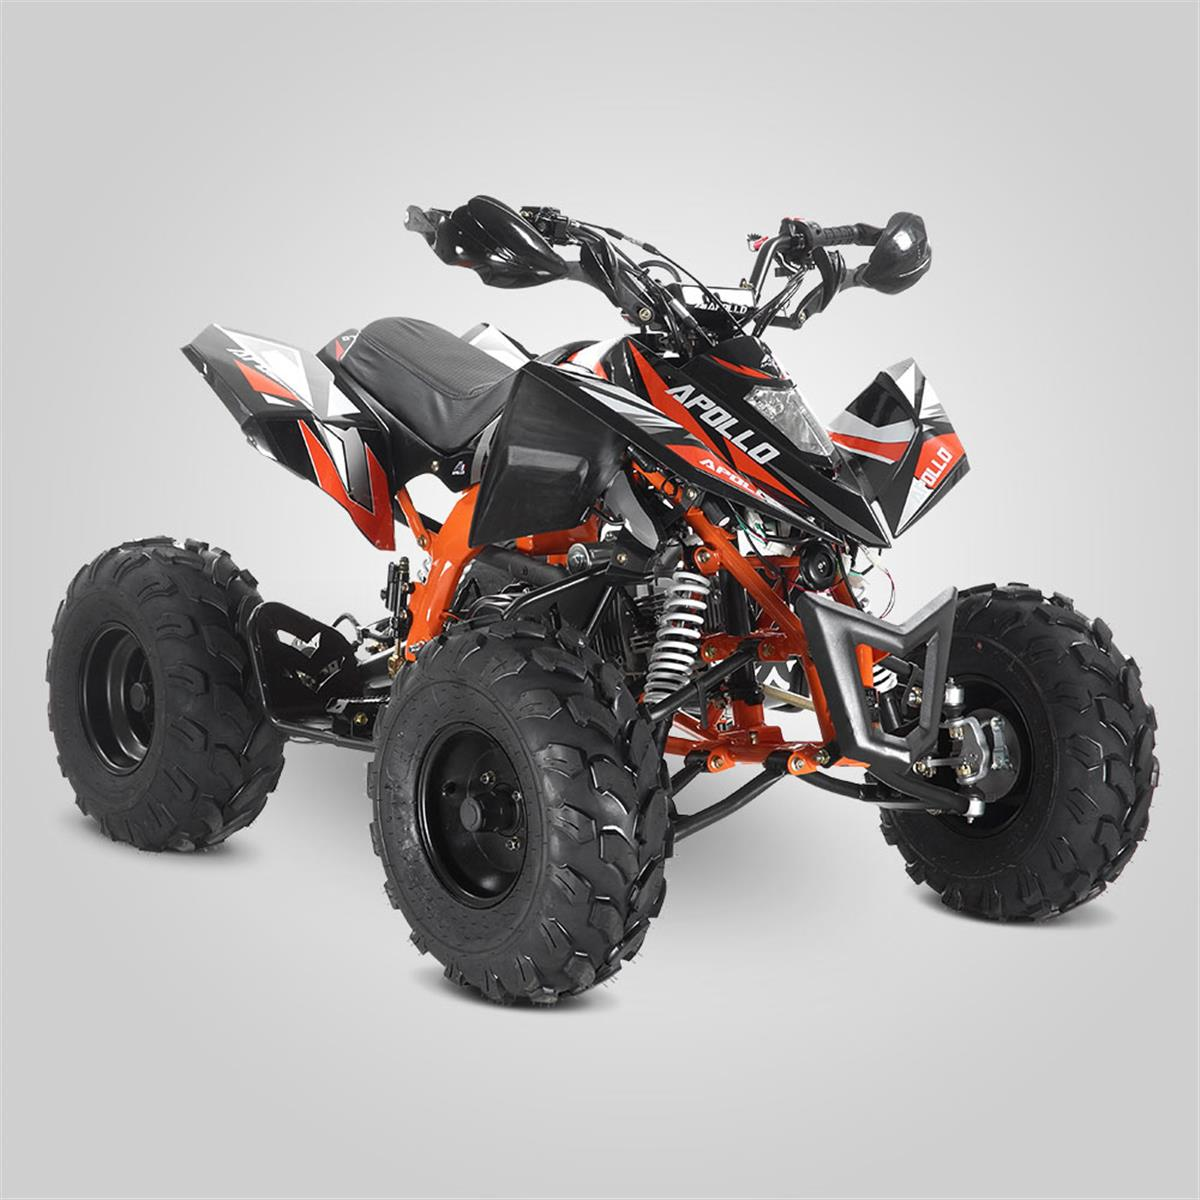 quad enfant 125cc de loisirs apollo smallmx dirt bike pit bike quads minimoto. Black Bedroom Furniture Sets. Home Design Ideas